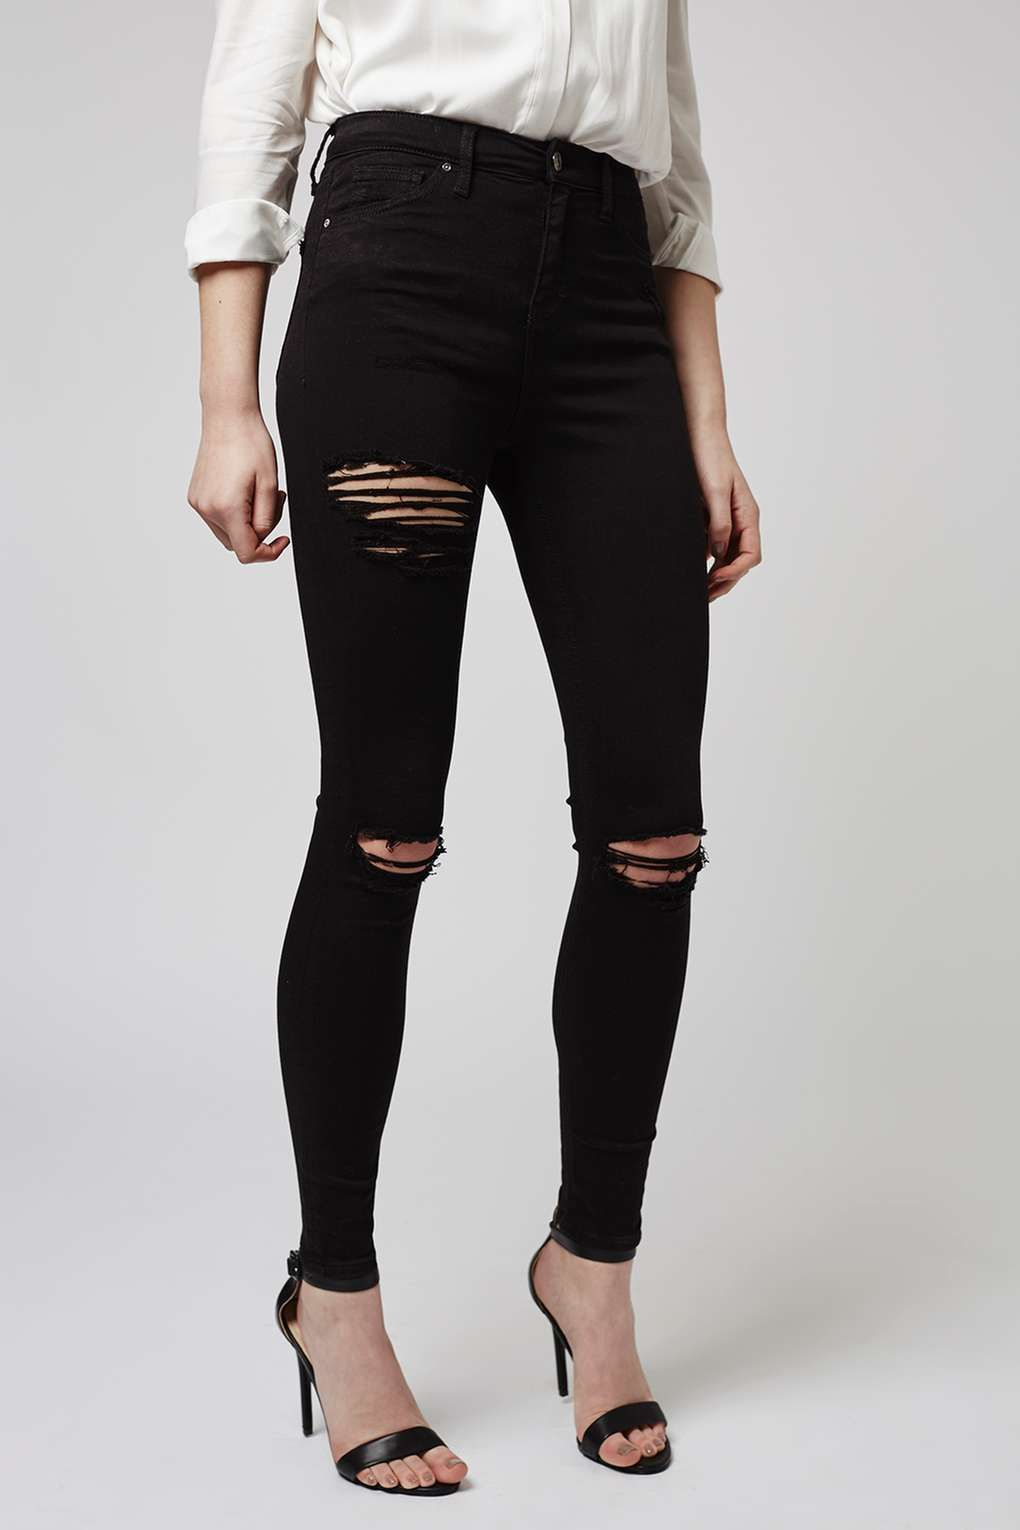 Super Rip Jamie Jeans | Ripped skinny jeans, High waisted